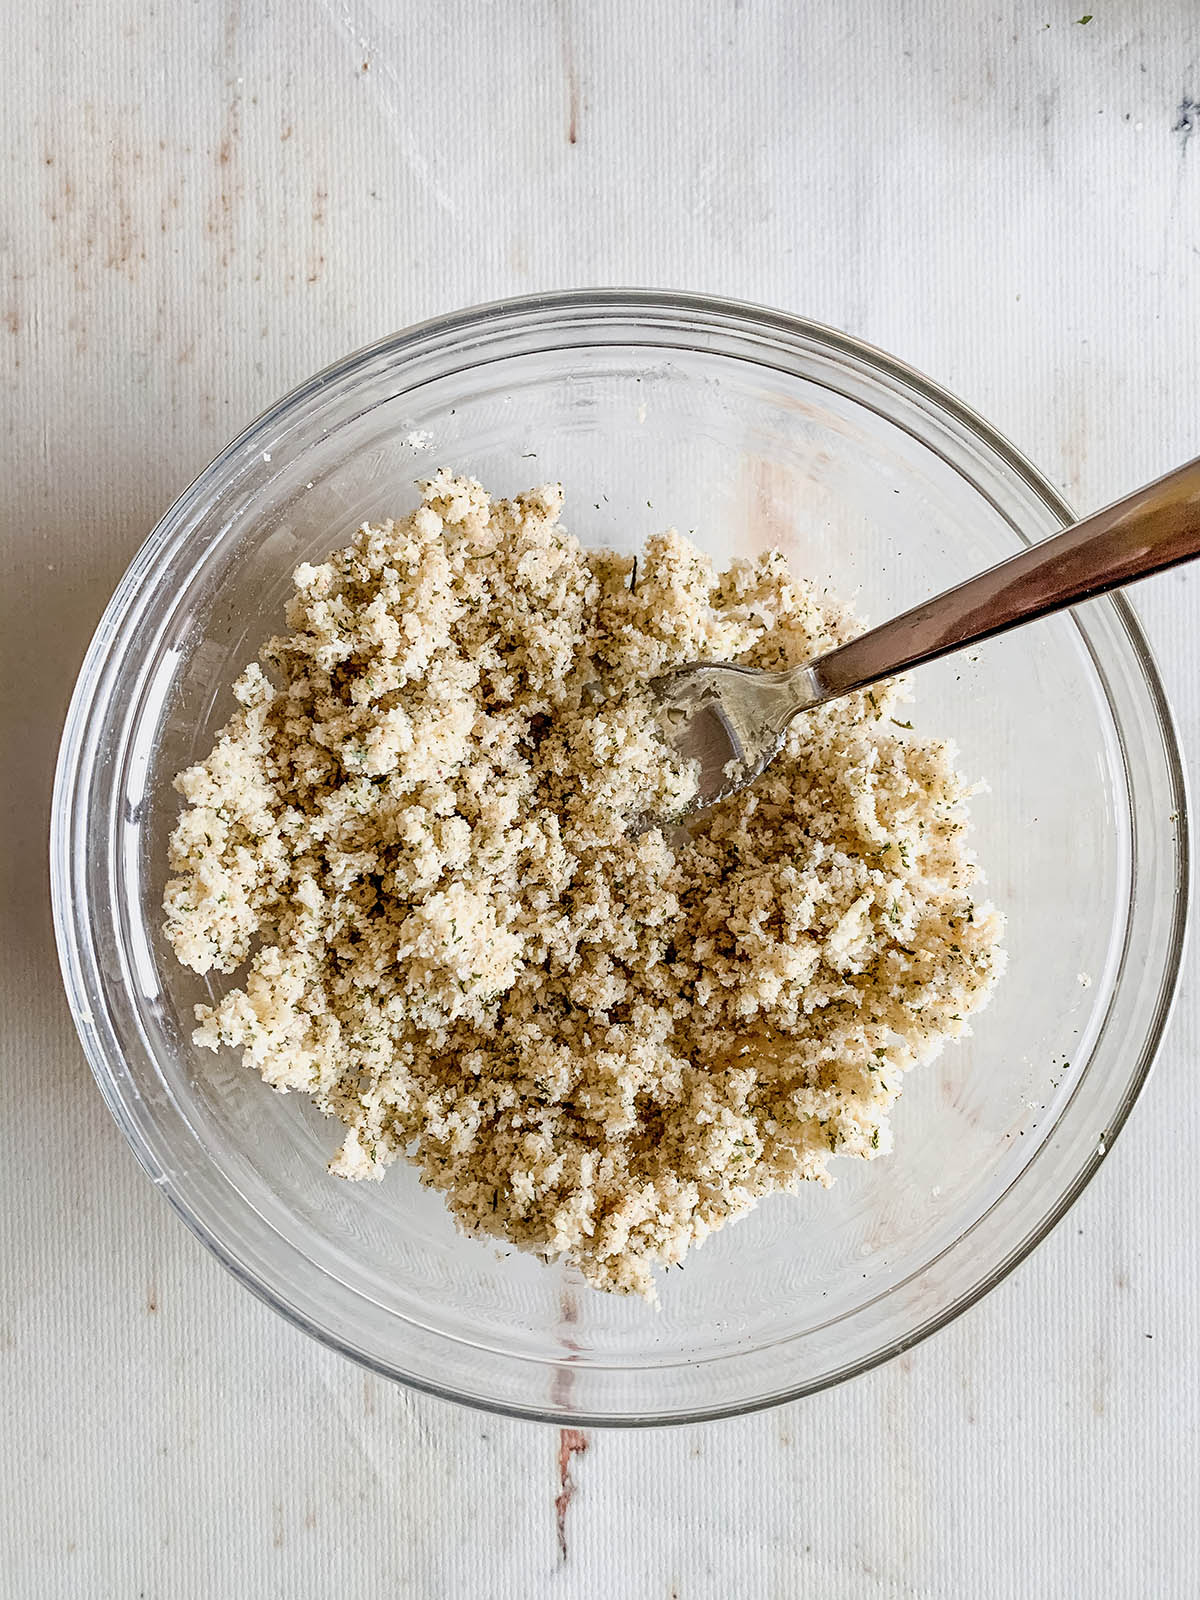 Mixed breadcrumb topping for fish.